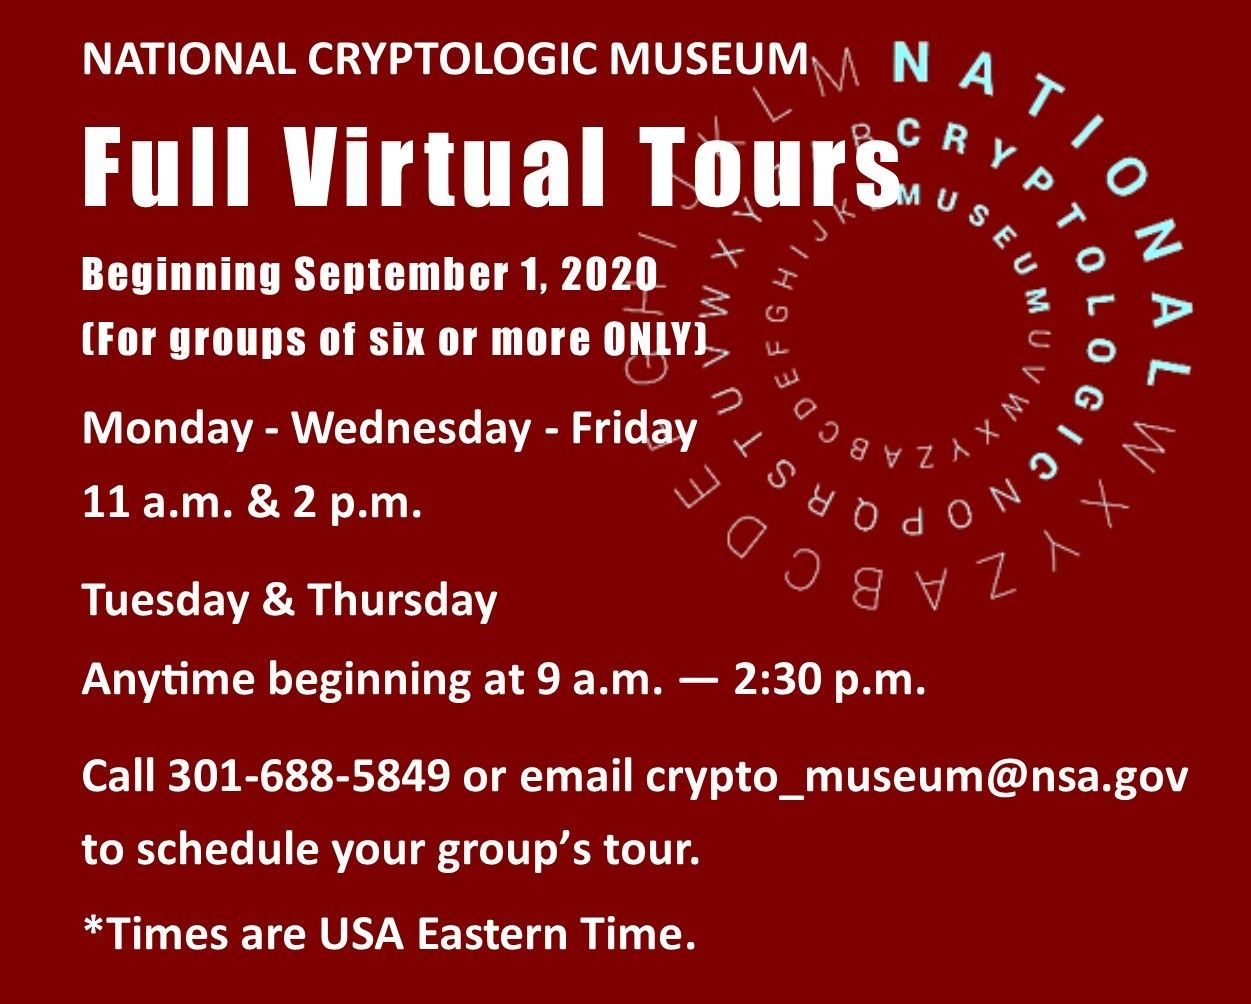 NCM Offers Full Virtual Tours